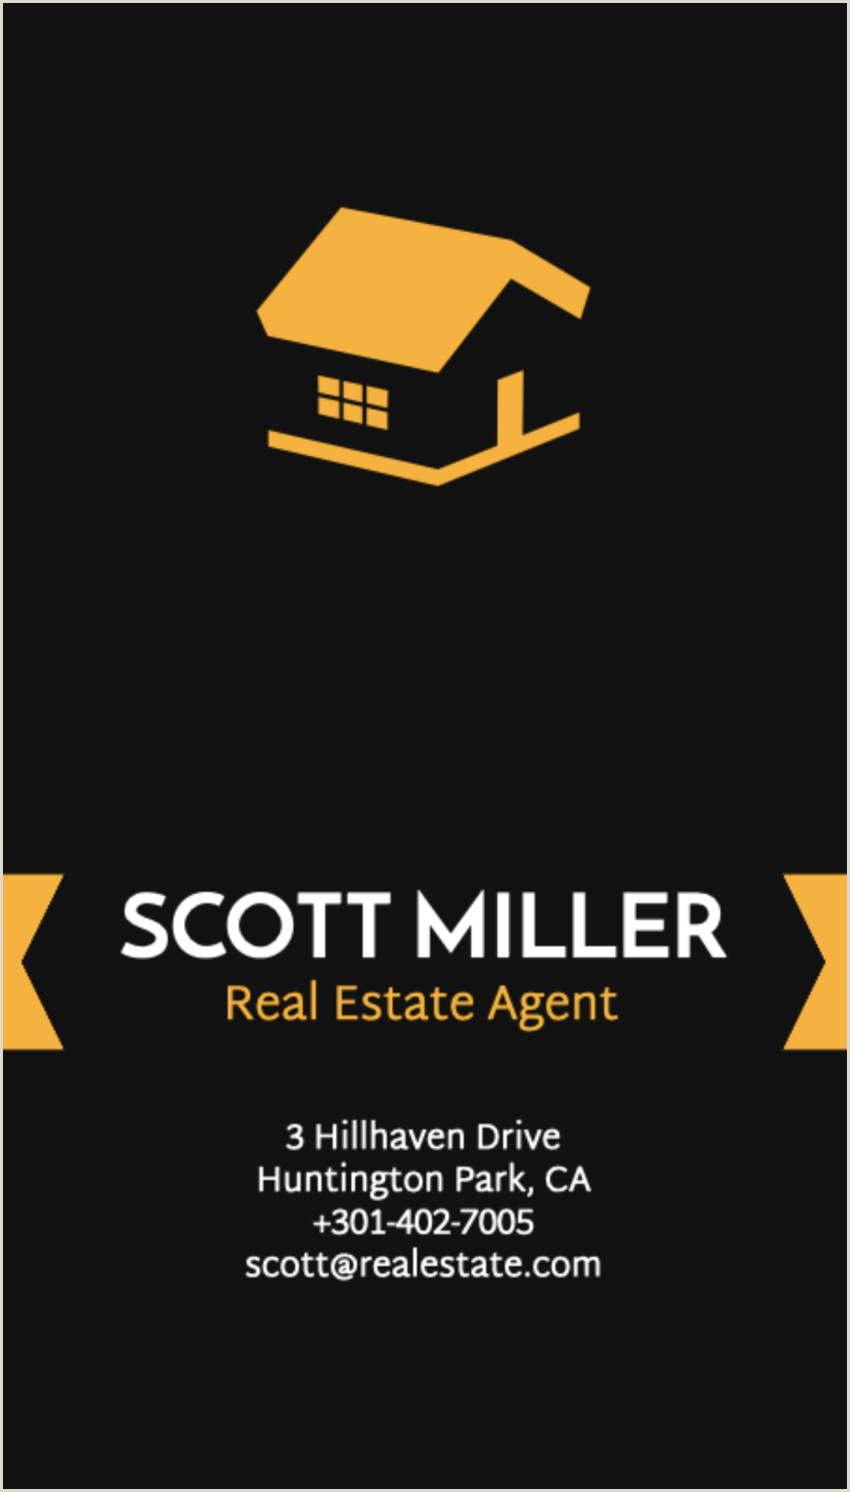 Best Business Cards We Buy Houses 25 Best Real Estate Business Card Designs Unique Ideas For